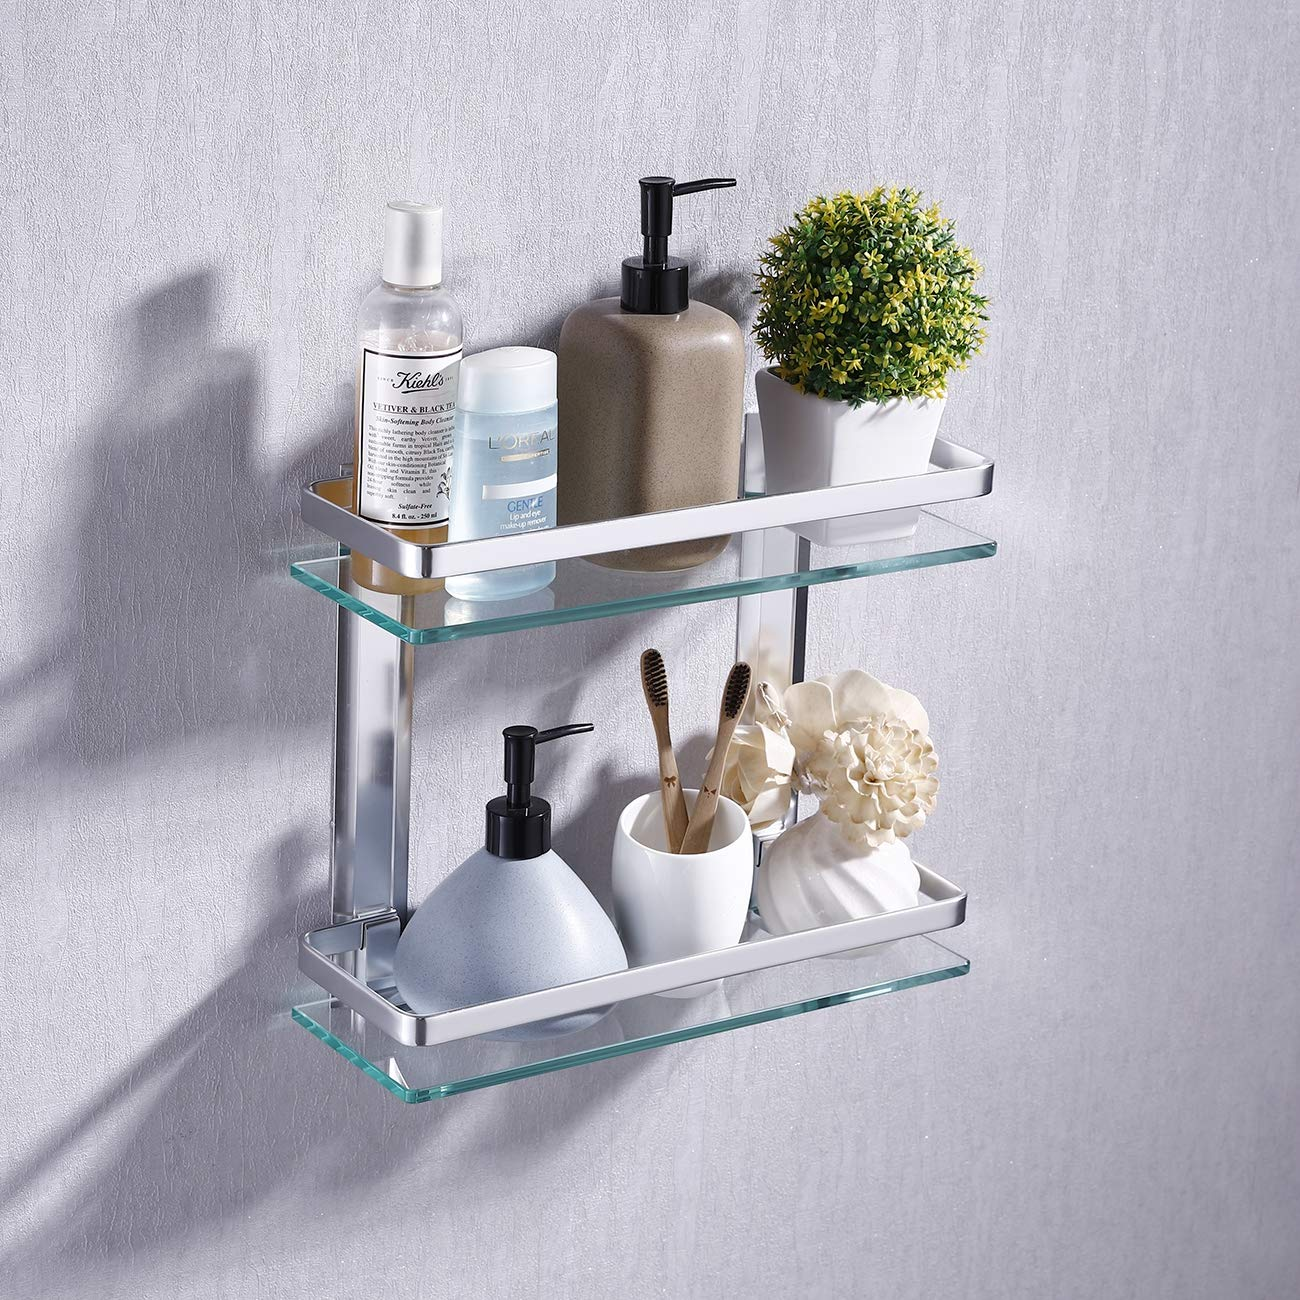 KES Aluminum Bathroom Glass Shelf 2 Tier Tempered Glass Rectangular Double Deck Extra Thick Silver Sand Sprayed Wall Mounted, A4126B by Kes